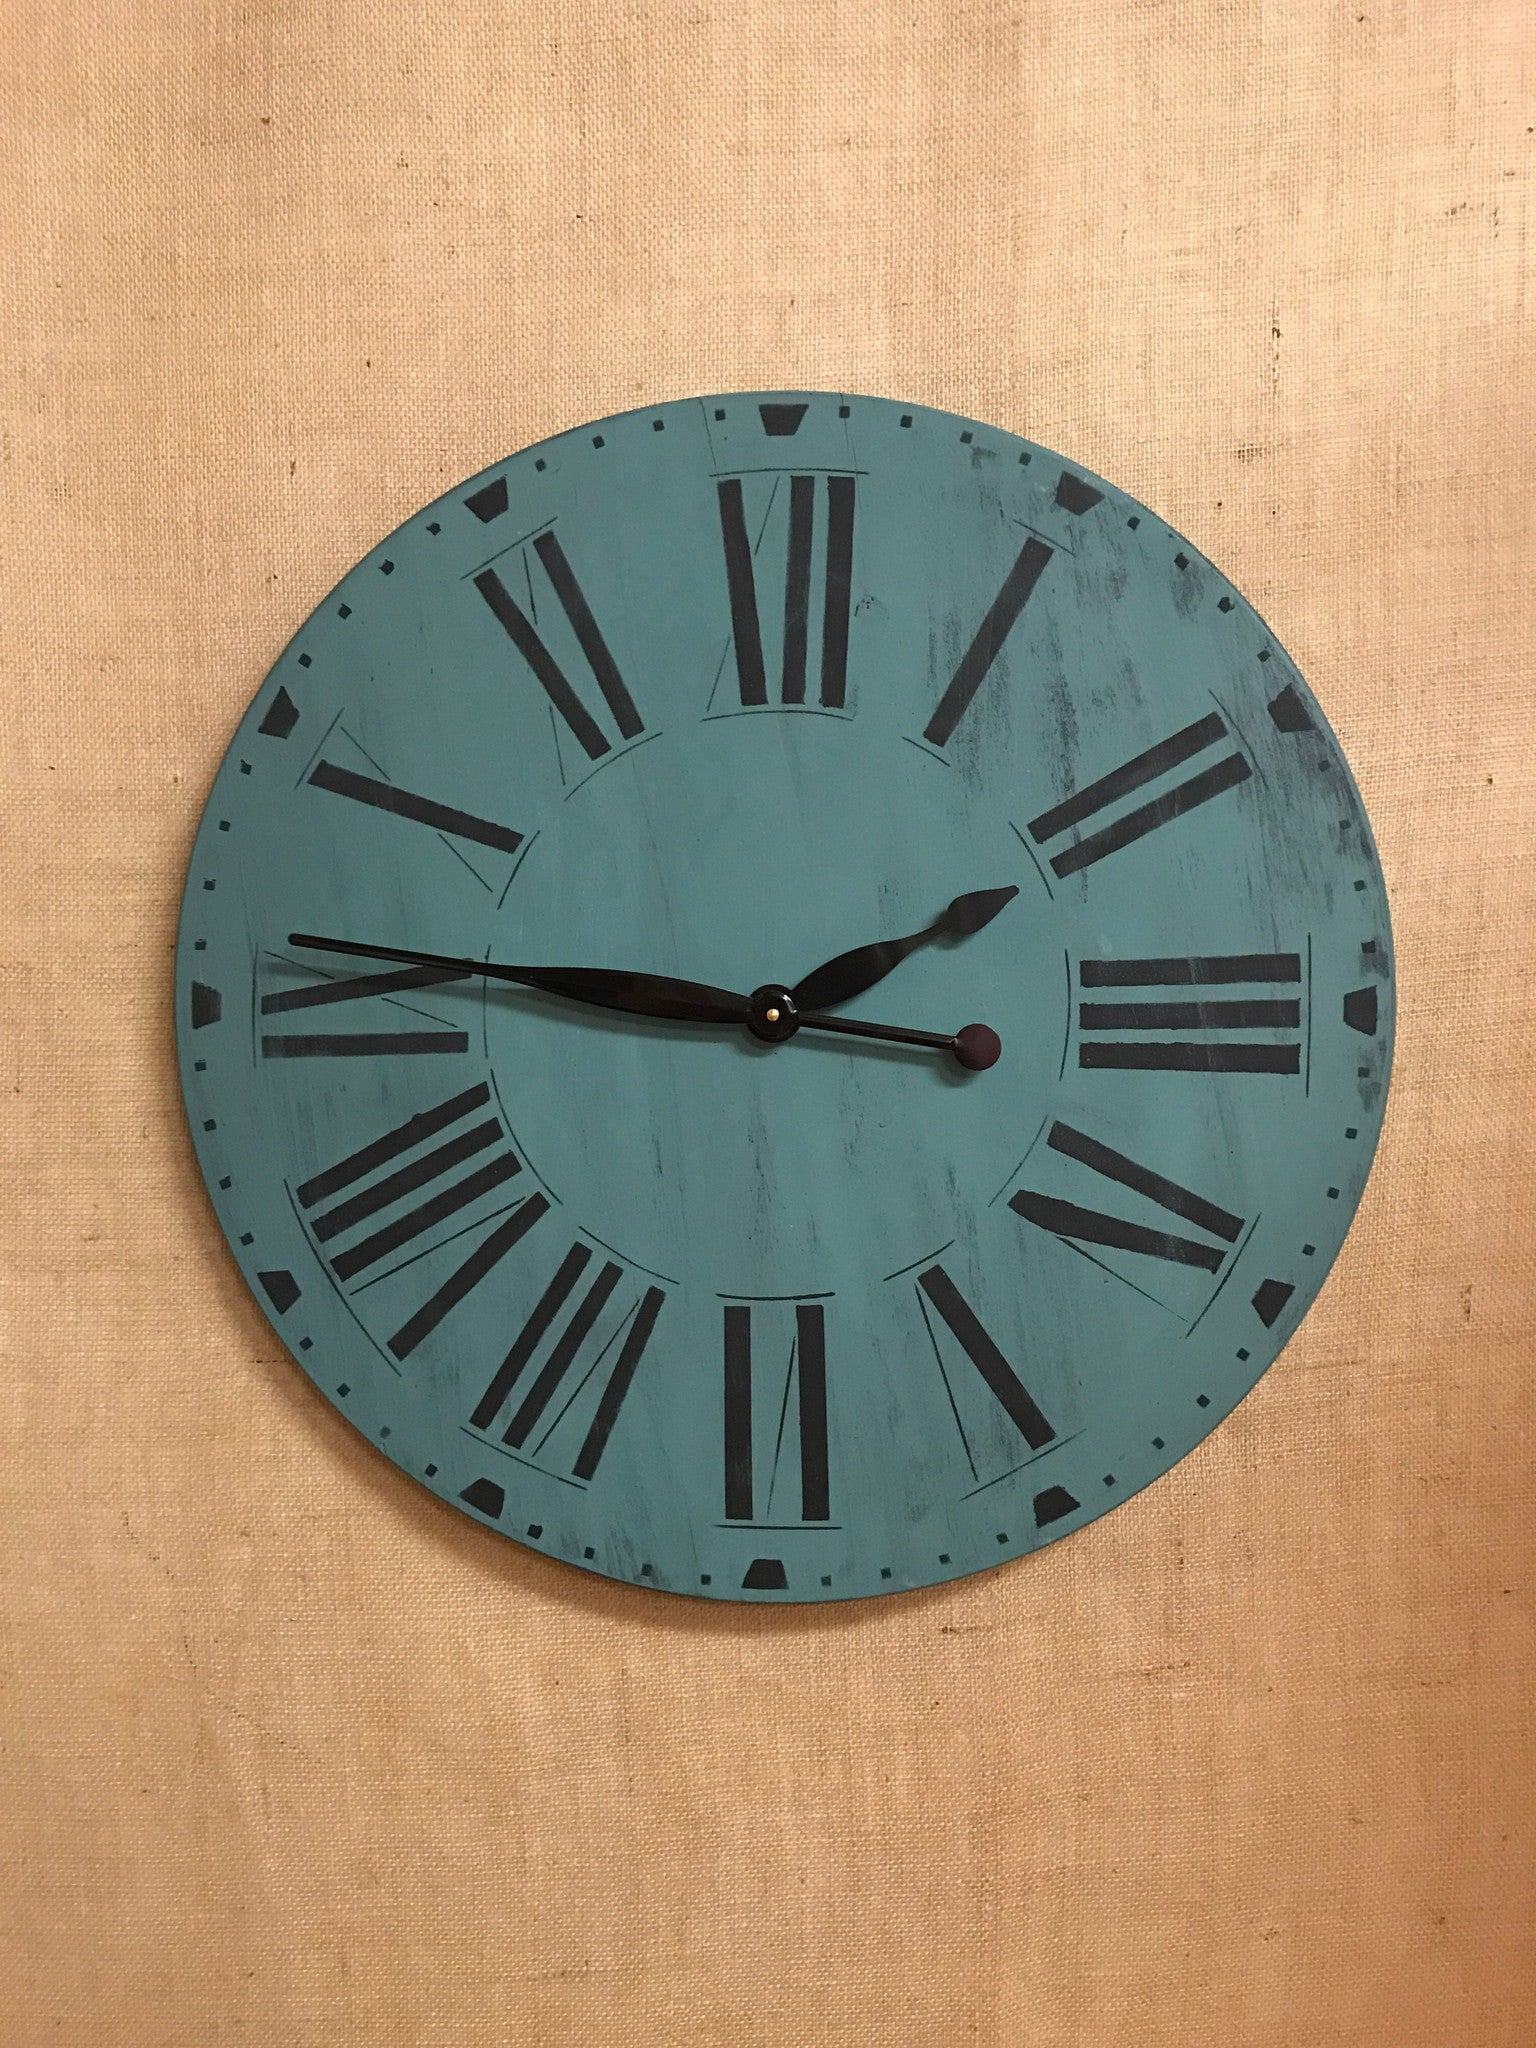 "Workshop: 23"" Farmhouse Clock U Schedule It!"